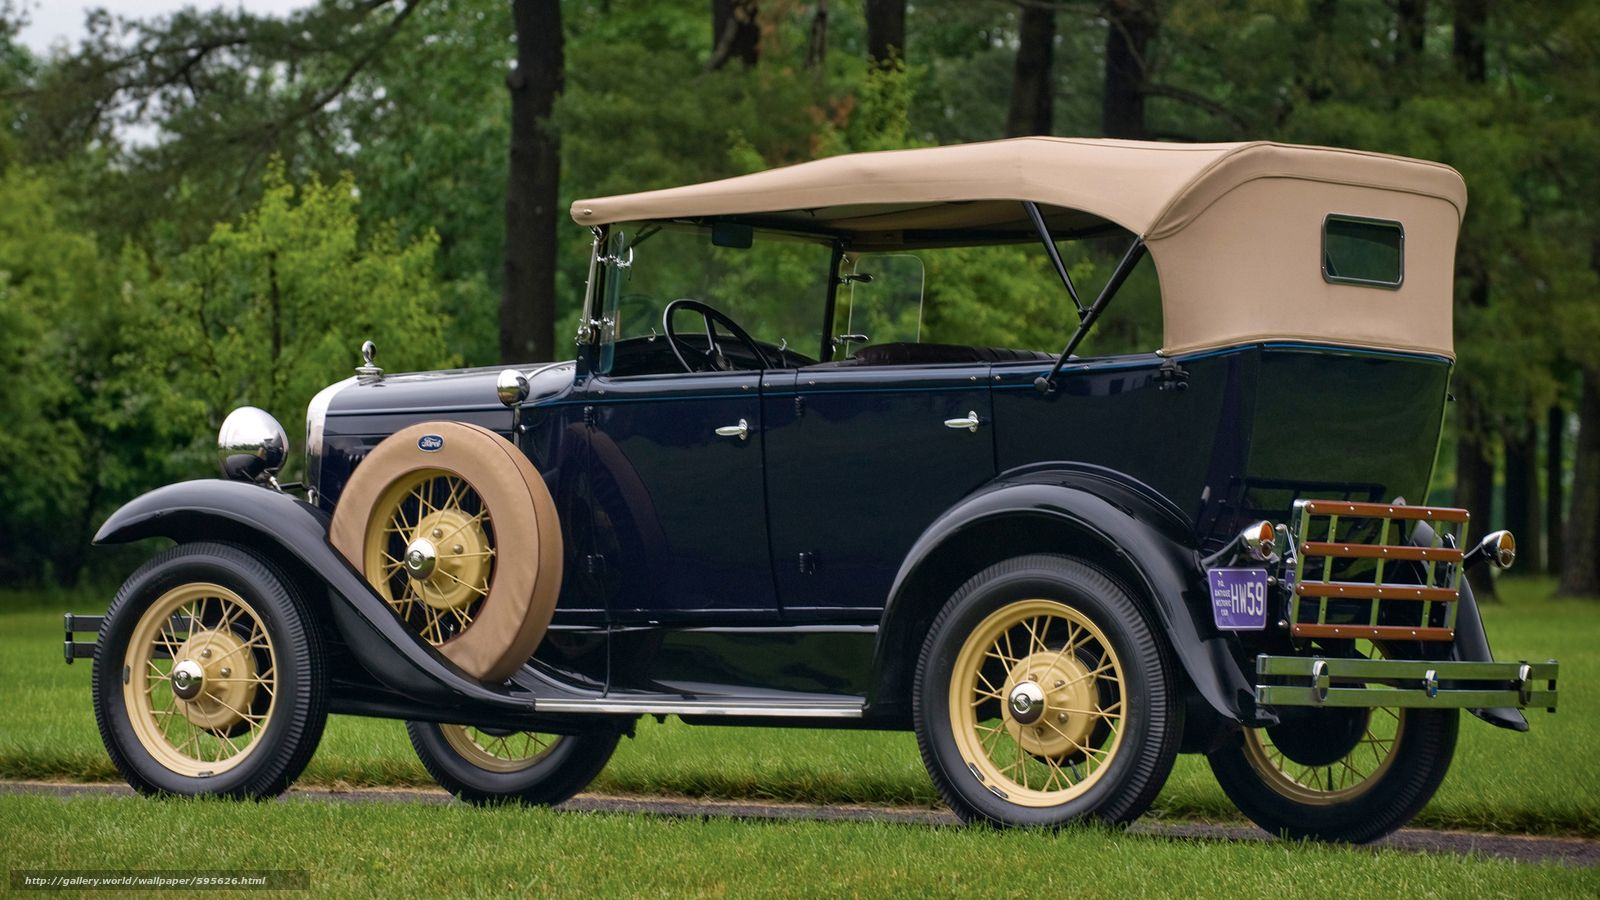 1930 Ford Model A 4 Door Phaeton Ford Models Ford Classic Cars